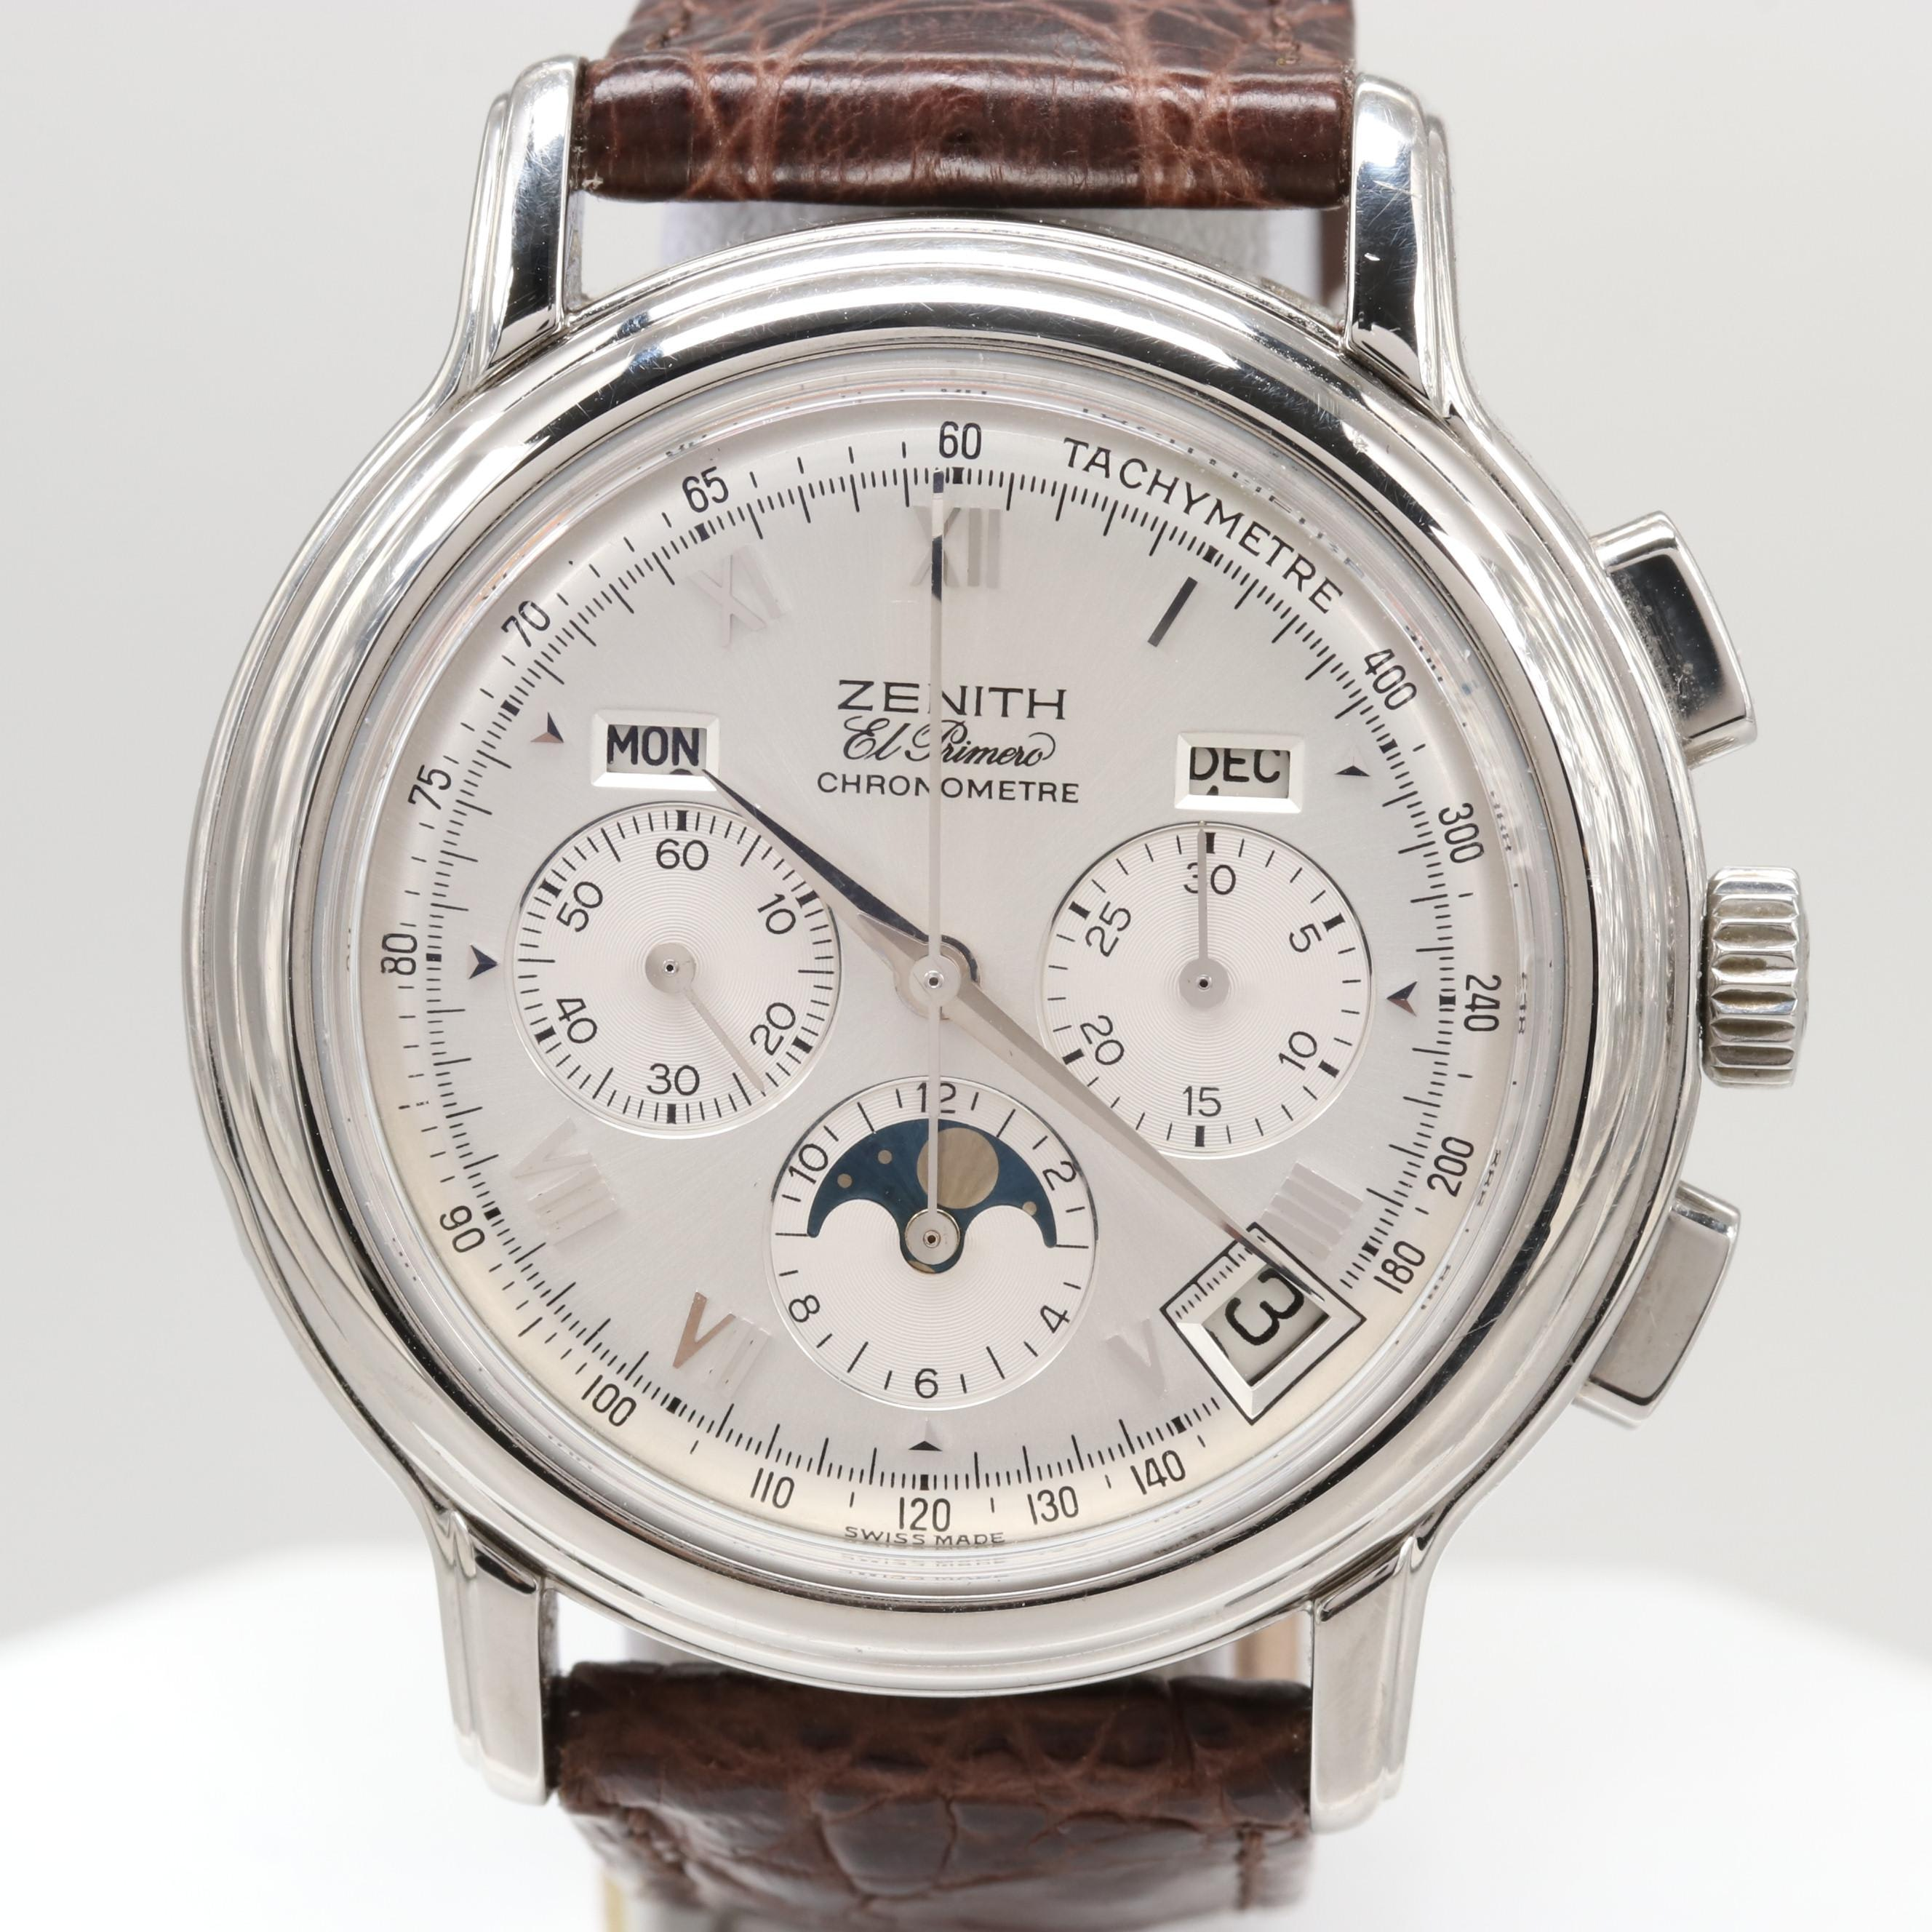 Zenith ChronoMaster Automatic Wristwatch, 2002